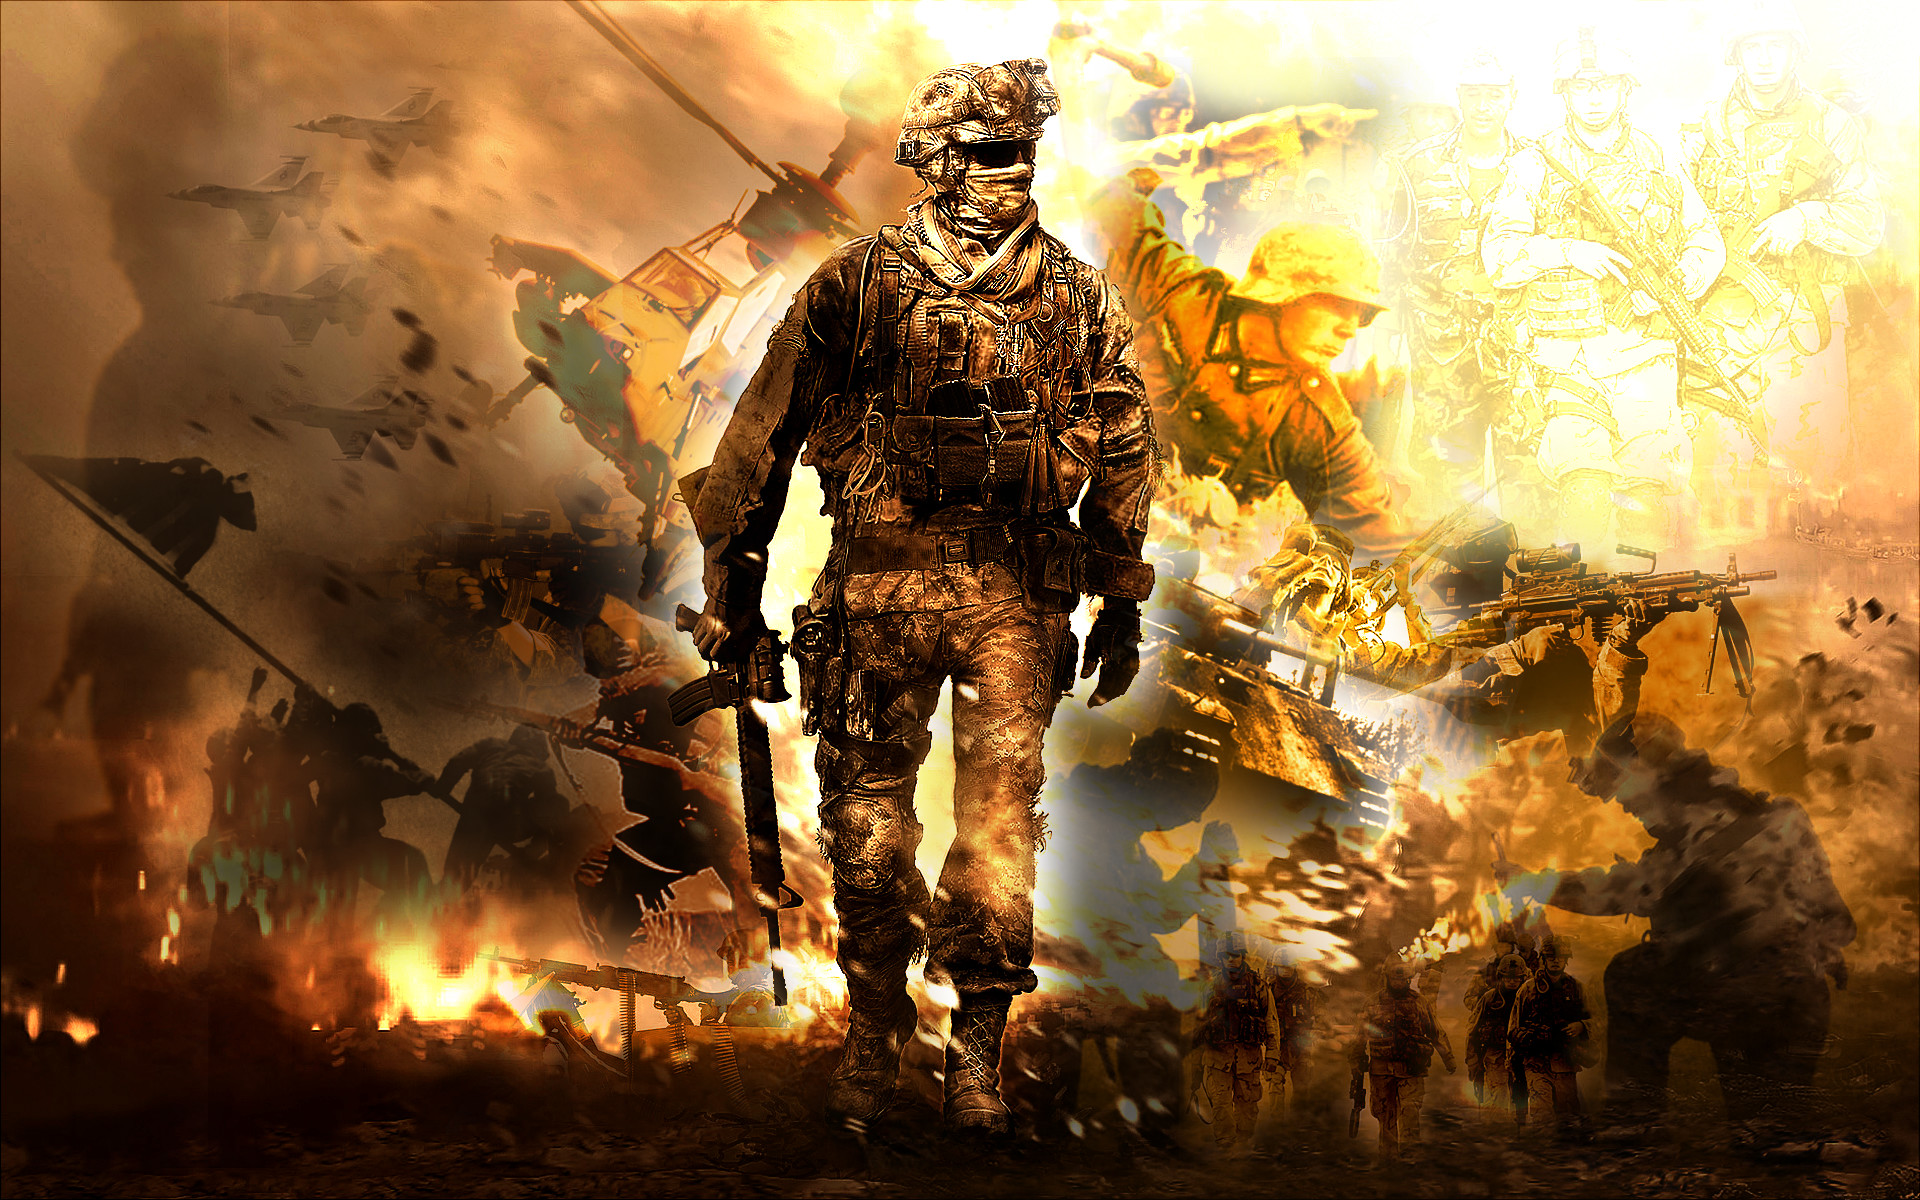 1920x1200 Badass War Wallpaper Full Hd On Wallpaper Hd